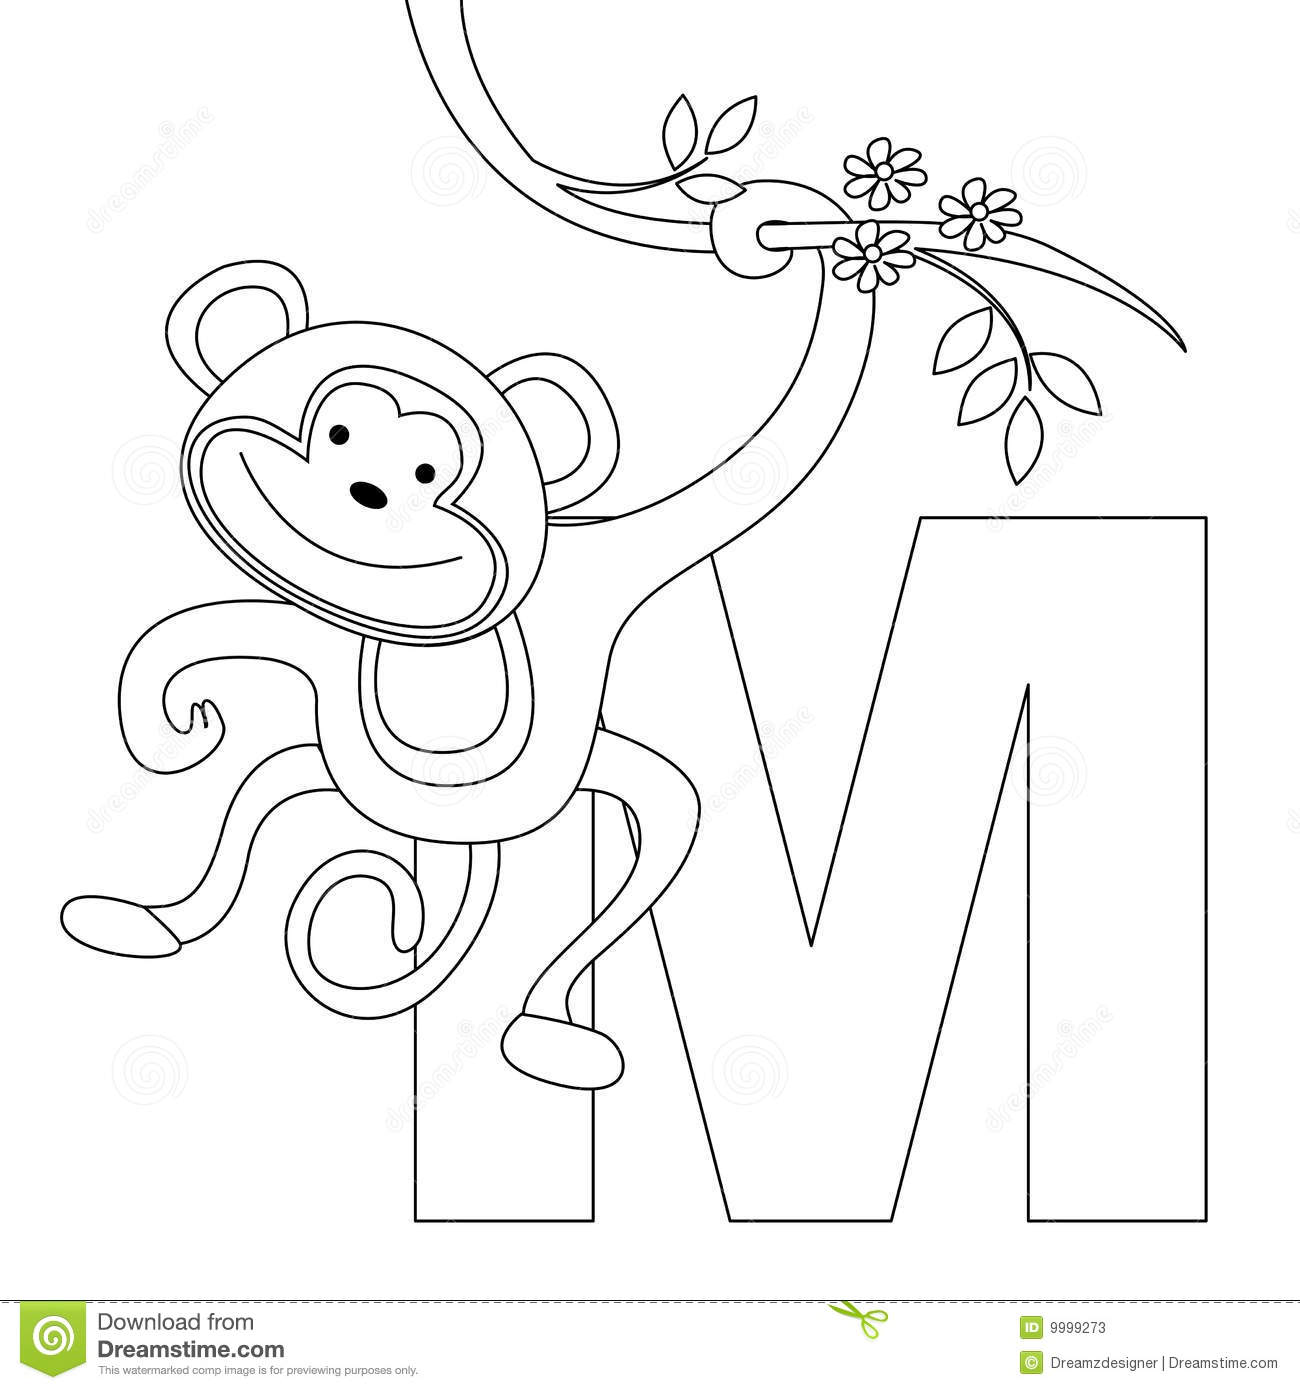 m coloring pages for preschool letter m is for mitten super coloring free printable m for coloring pages preschool